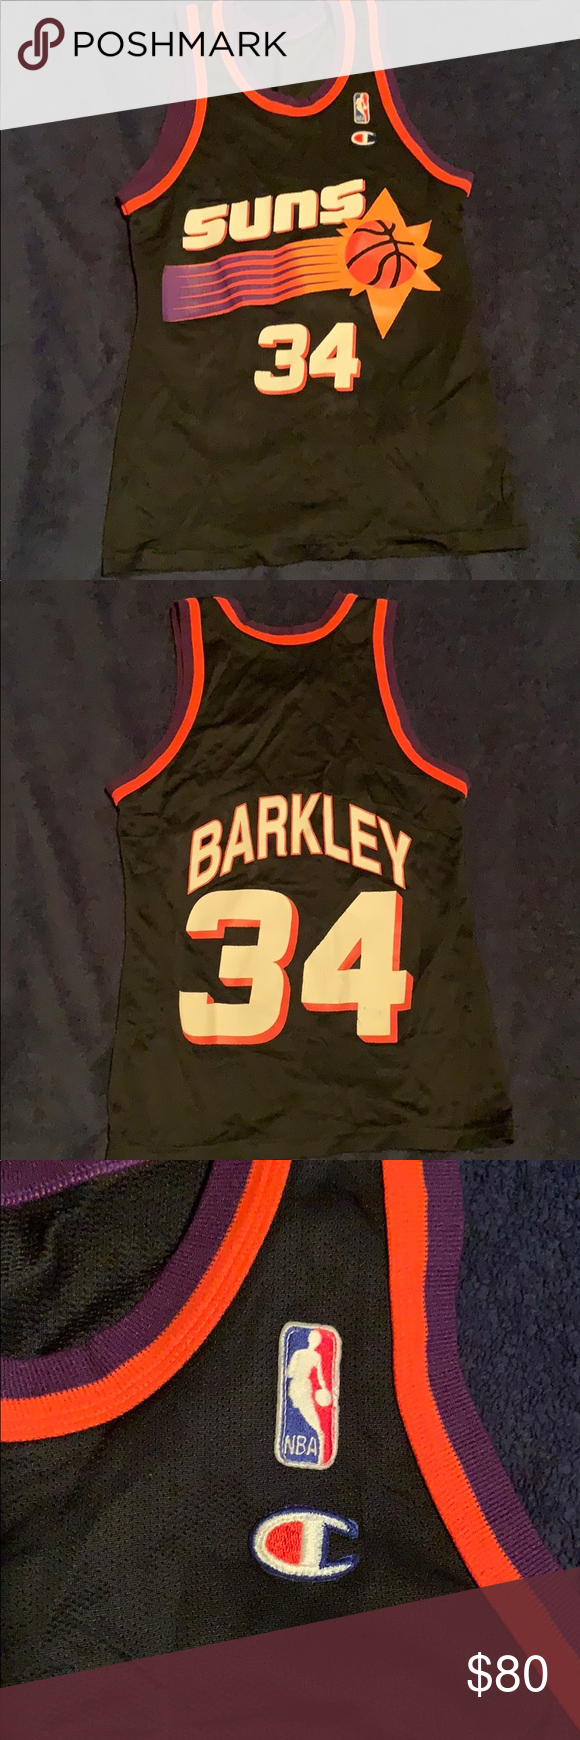 separation shoes 668a6 2634a Throwback Suns Charles Barkley 34 jersey Rare. Used. Great ...